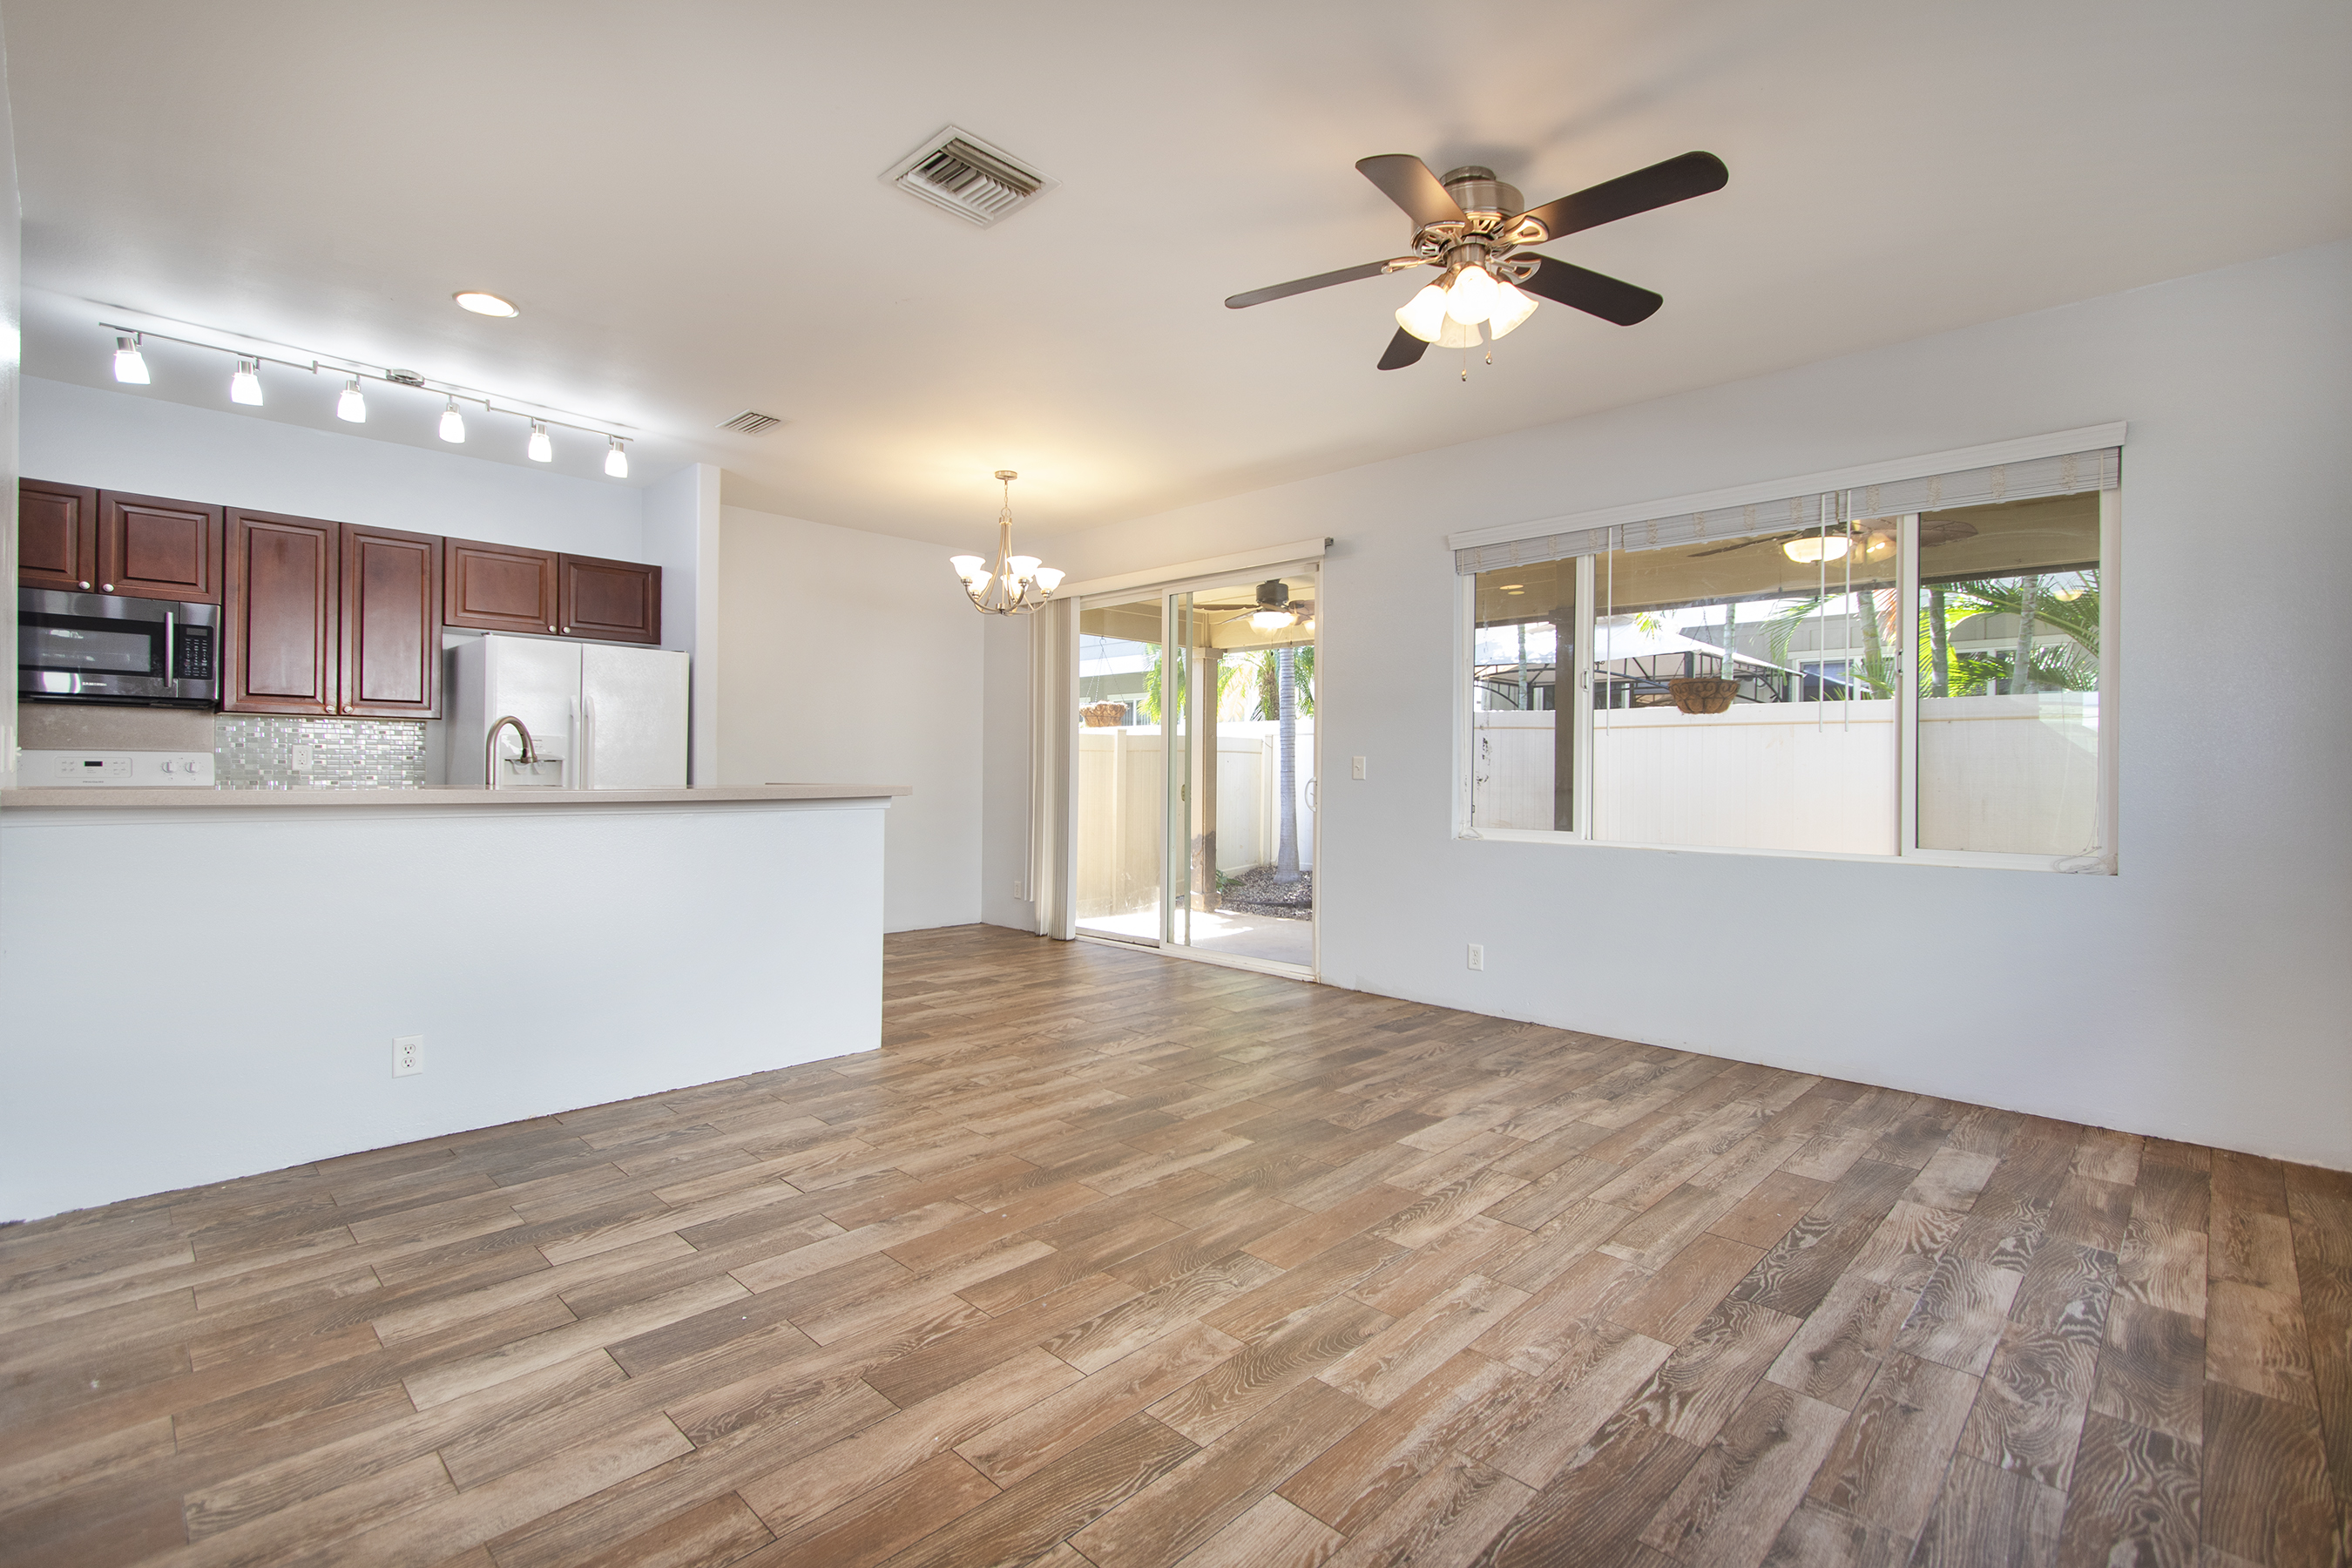 Living room and open kitchen with wood plank porcelain tile flooring